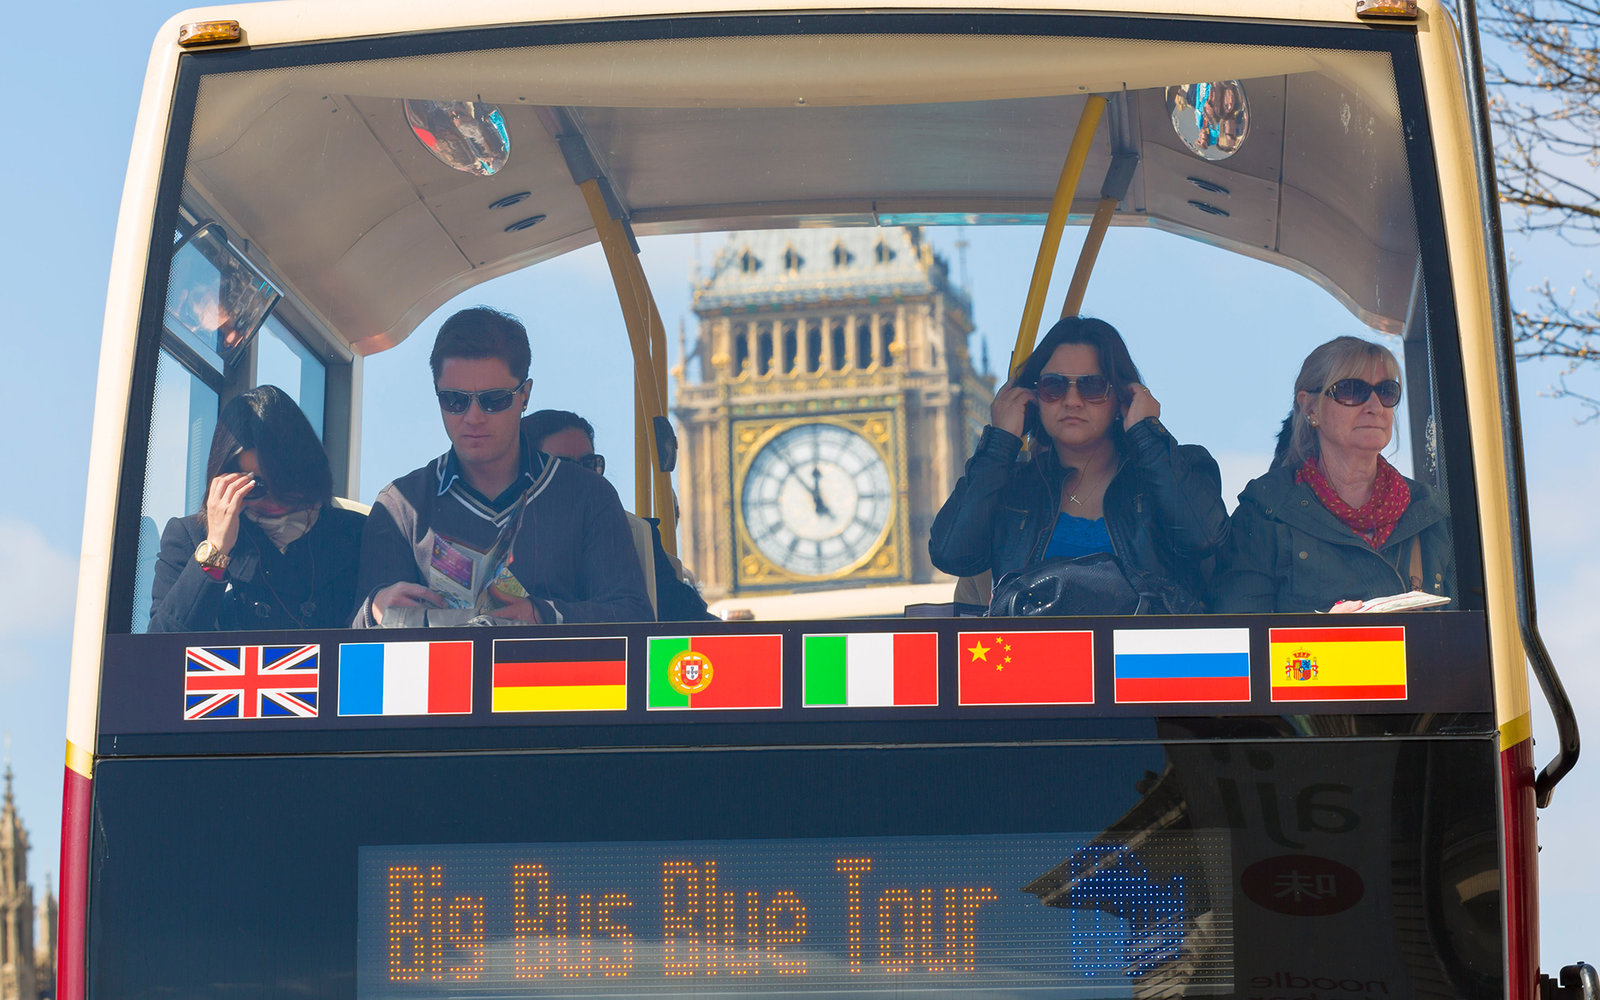 Tourism in London